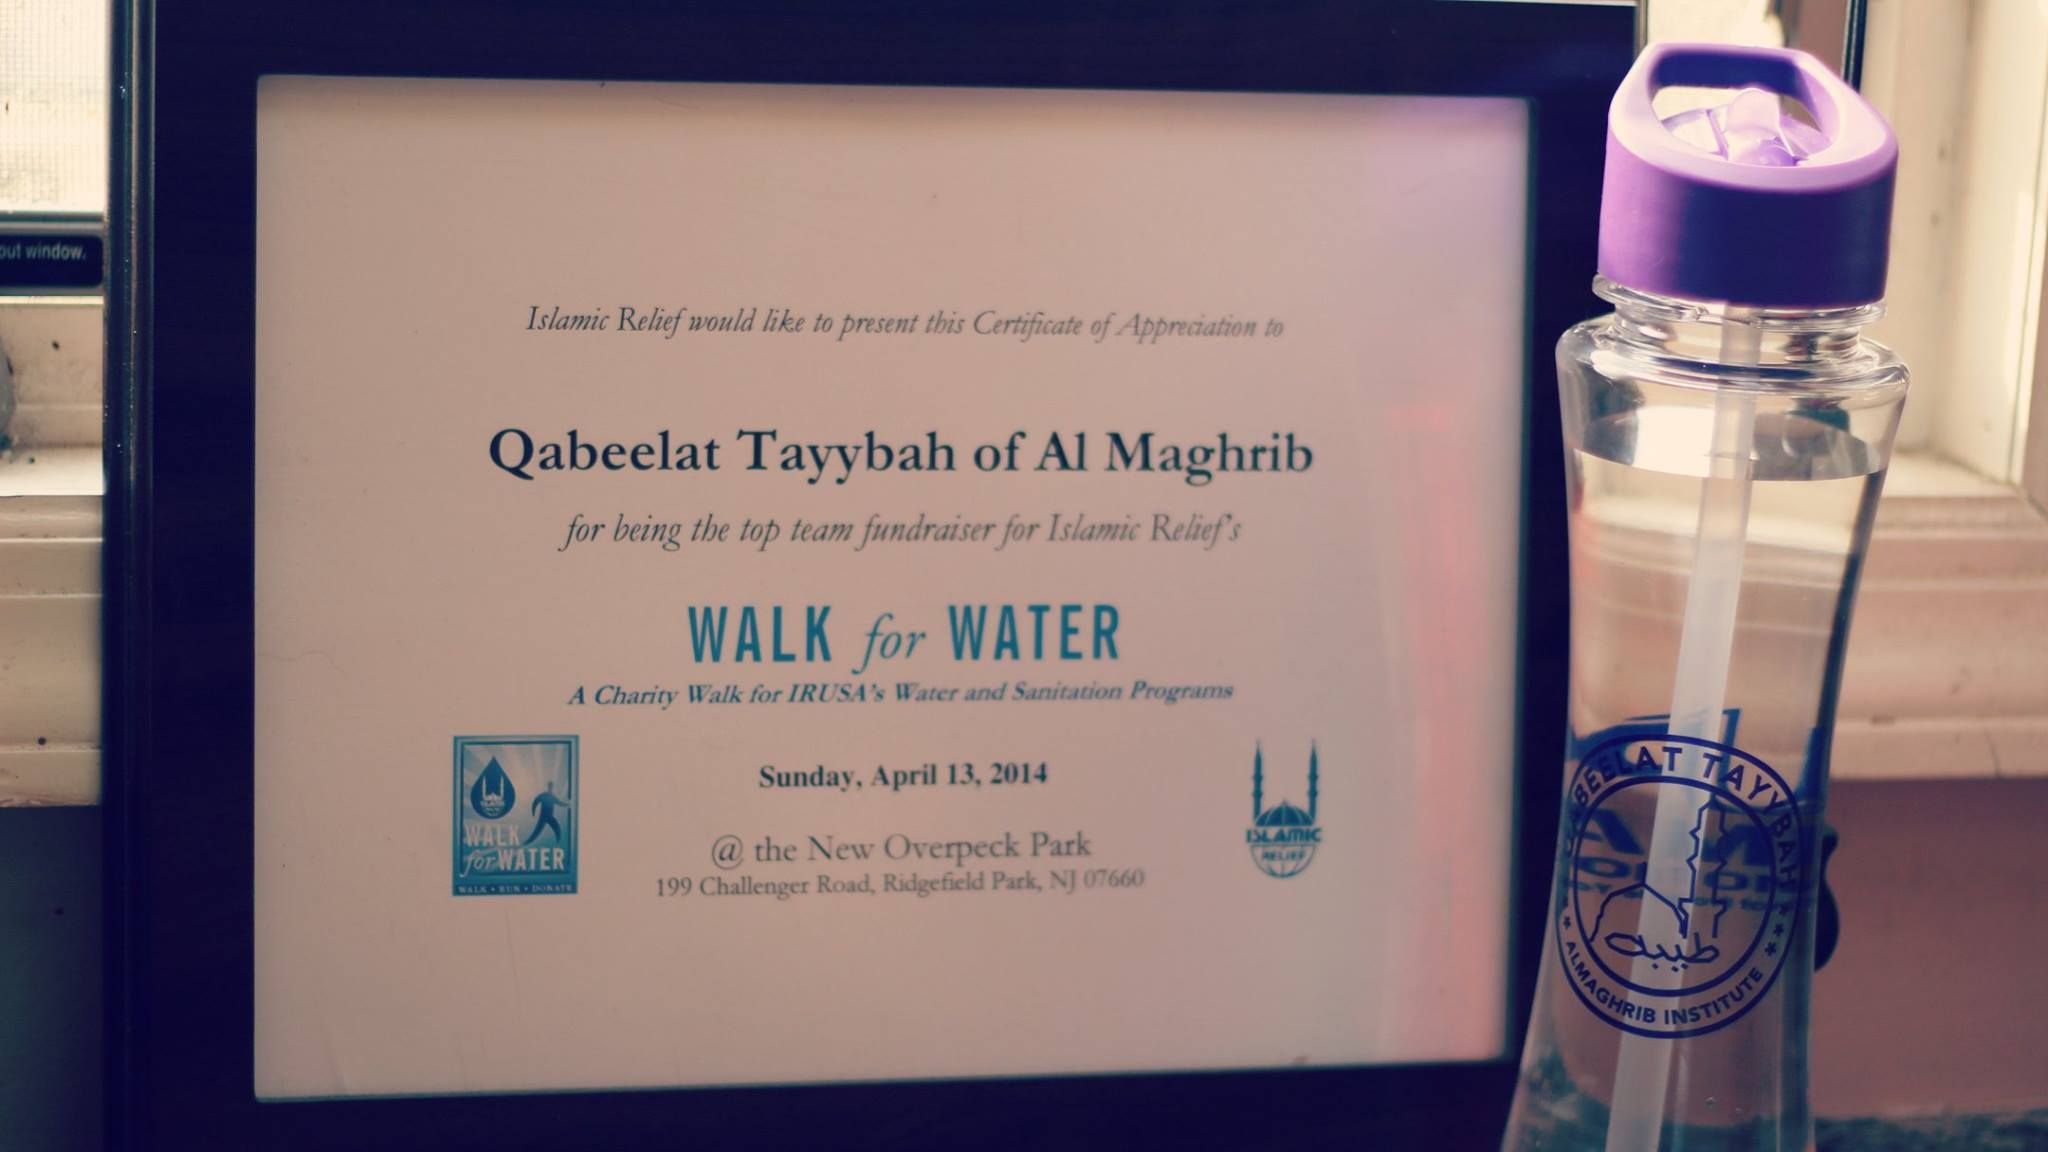 Custom Water Bottle Given Out To Qabeelat Tayybah Of Al Maghrib Team For Walkforwater Irusa Islamicrelief Tritan Bottle Custom Water Bottles Bottle